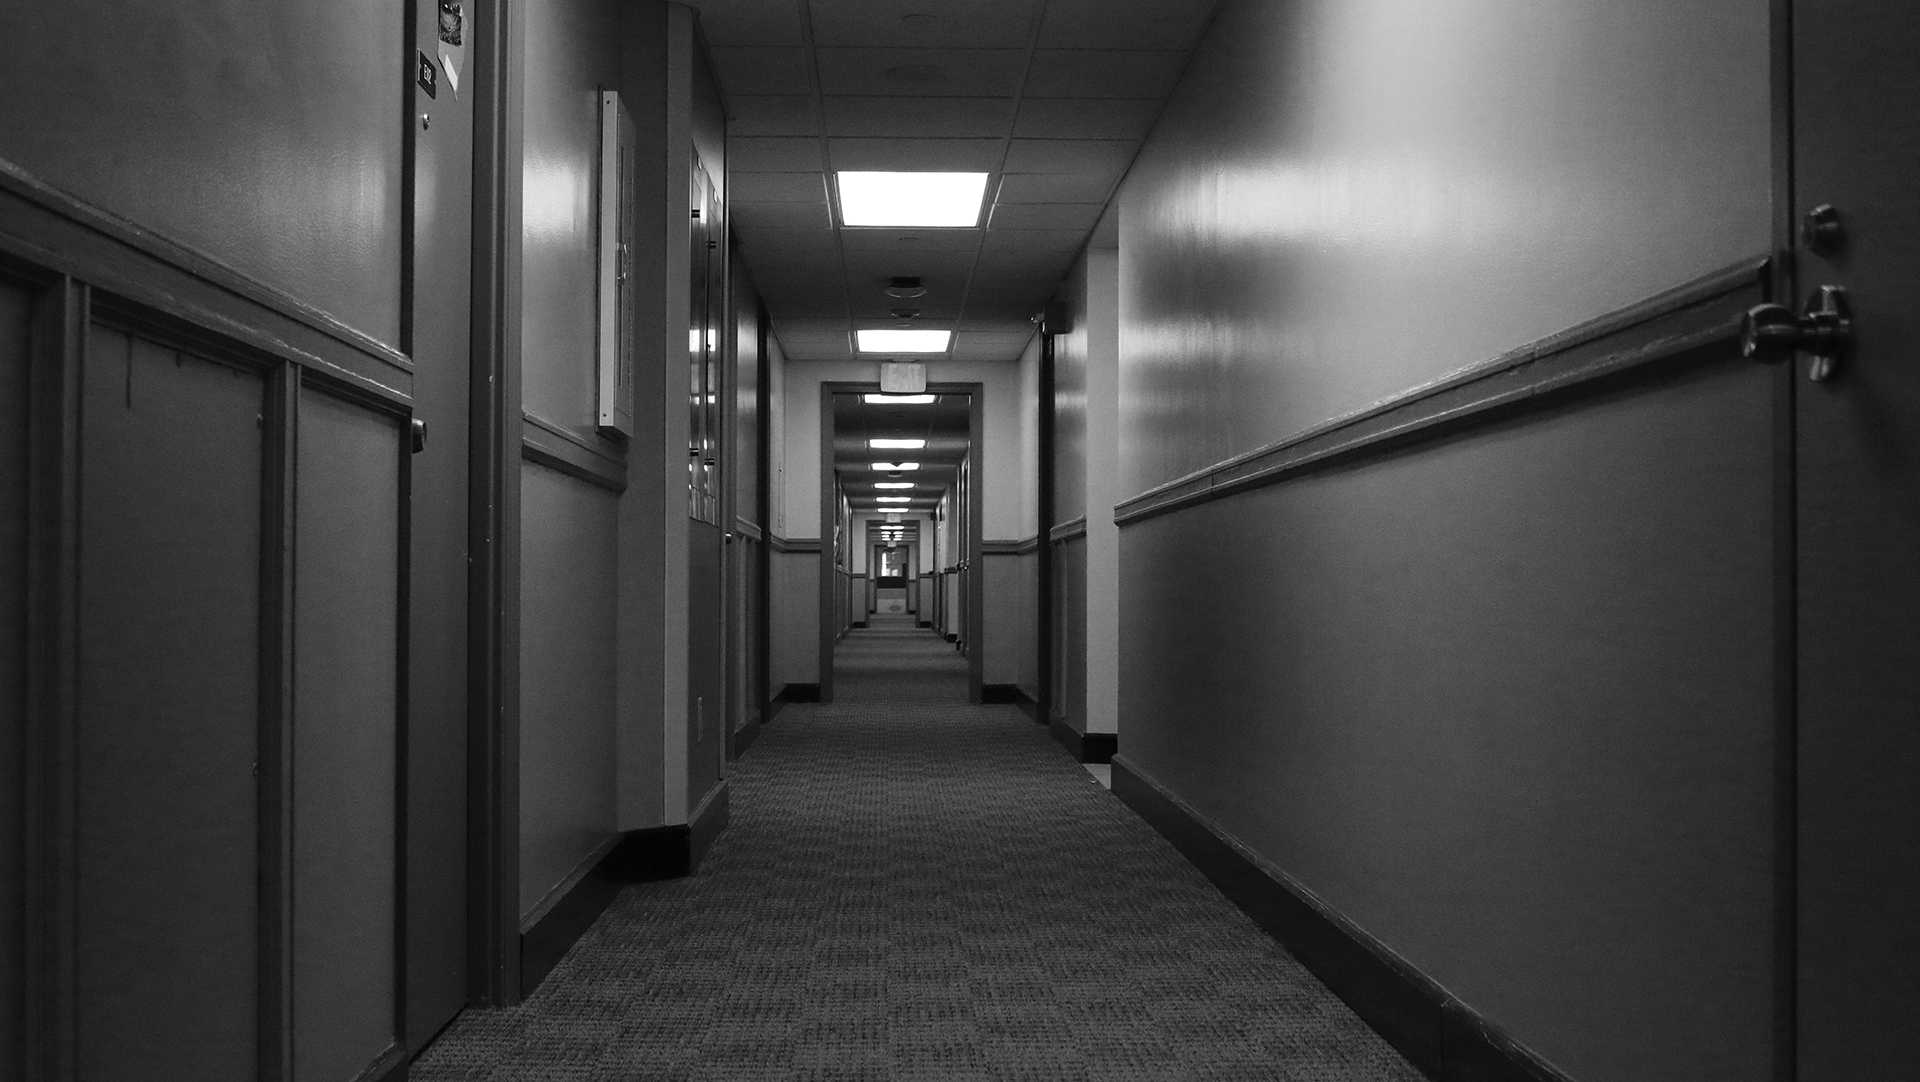 In the halls of Hillcrest as seen on Tuesday, Oct. 3, 2017. Hillcrest is one of the University of Iowa's Residence Halls. (Ashley Morris/The Daily Iowan)